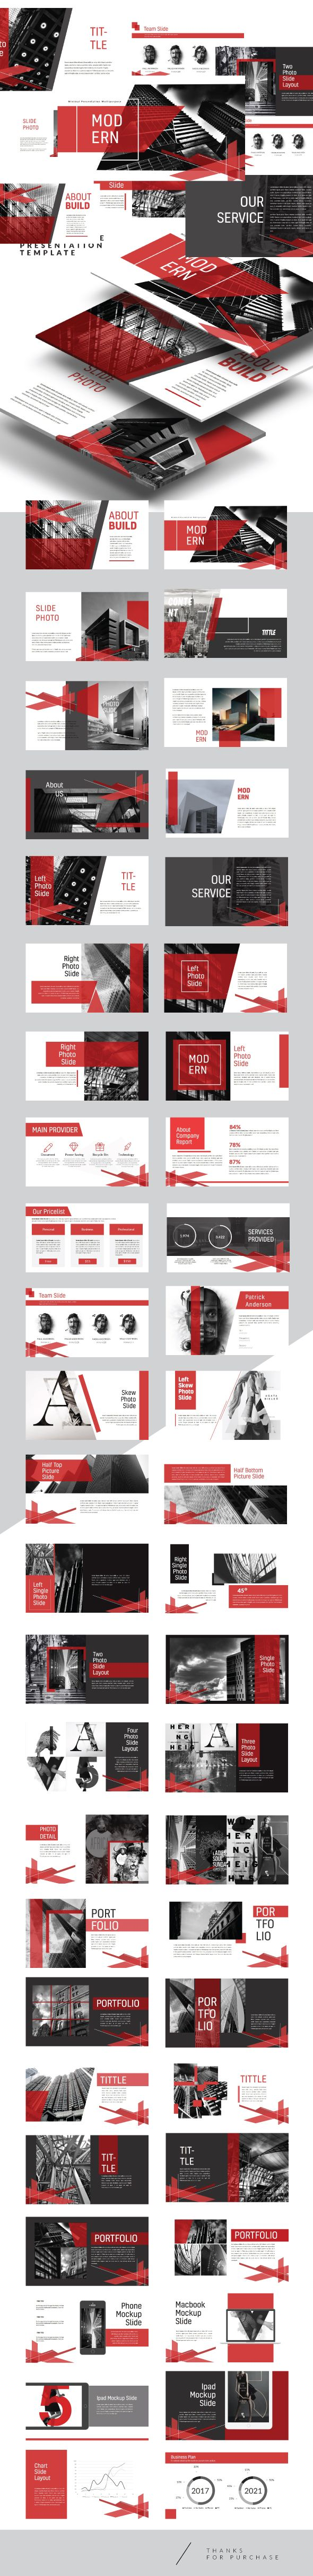 Arch - Creative Multipurpose PowerPoint Template